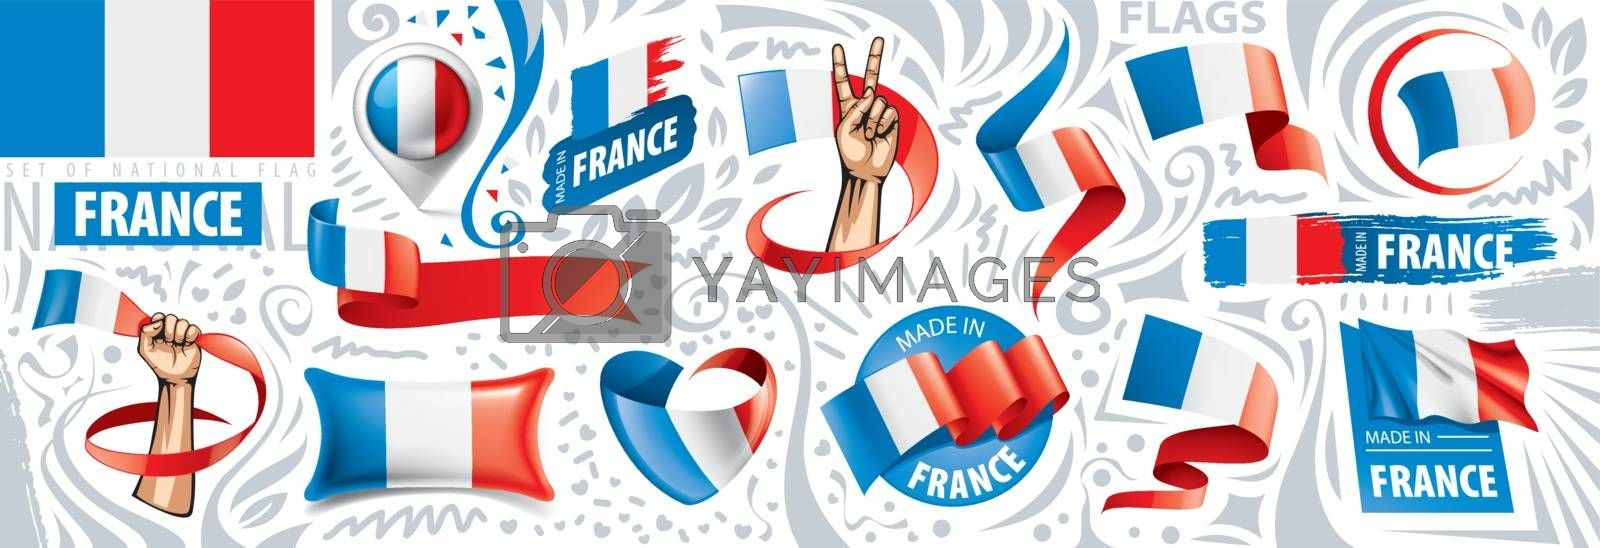 Vector set of the national flag of France in various creative designs.